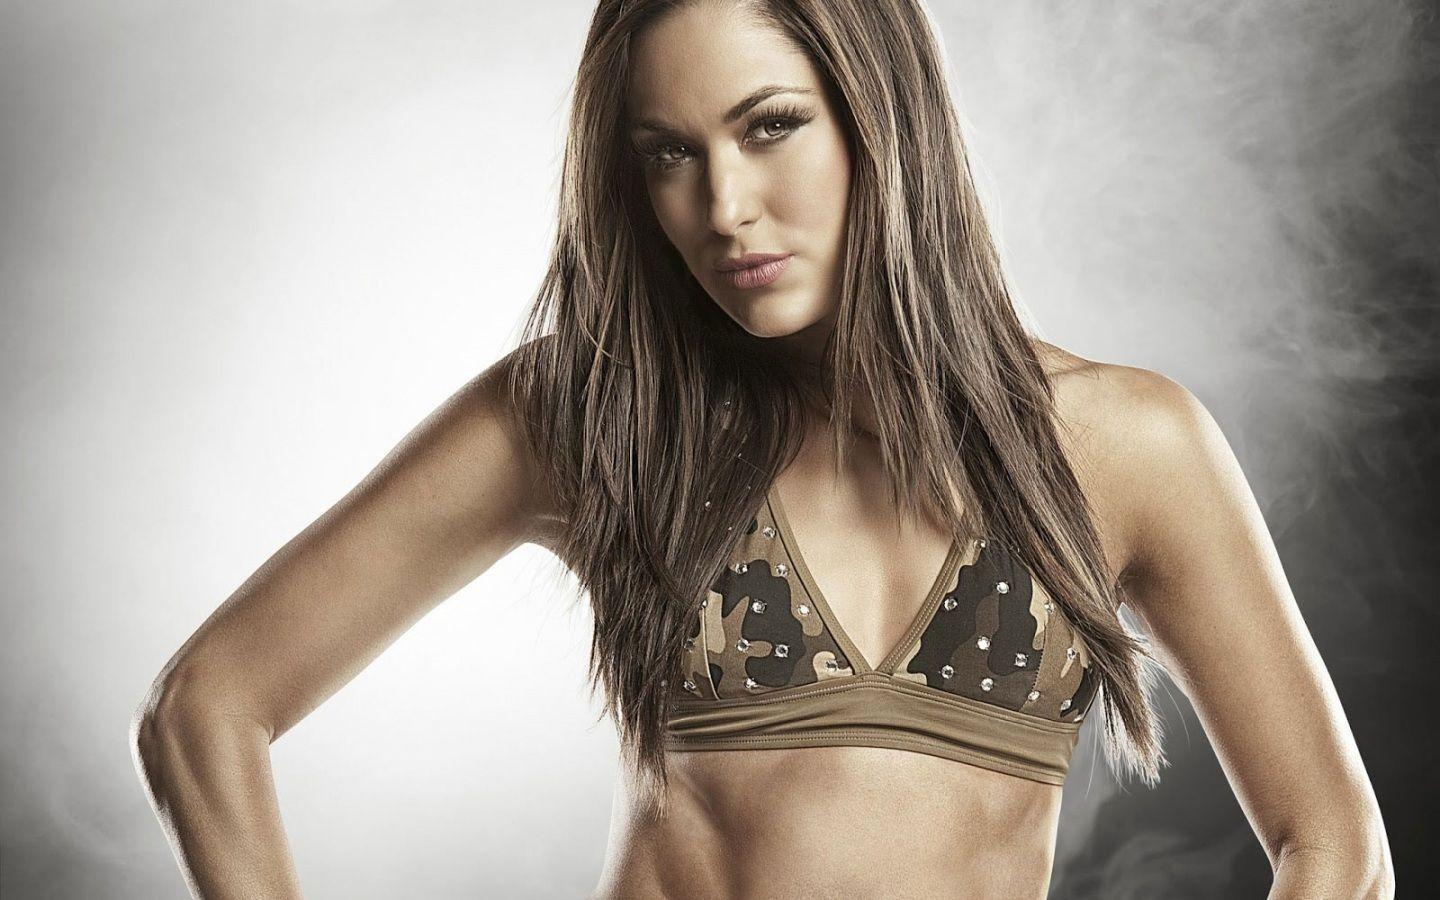 Brie Bella And Nikki Bella Wallpaper | CloudPix | Places to Visit ...